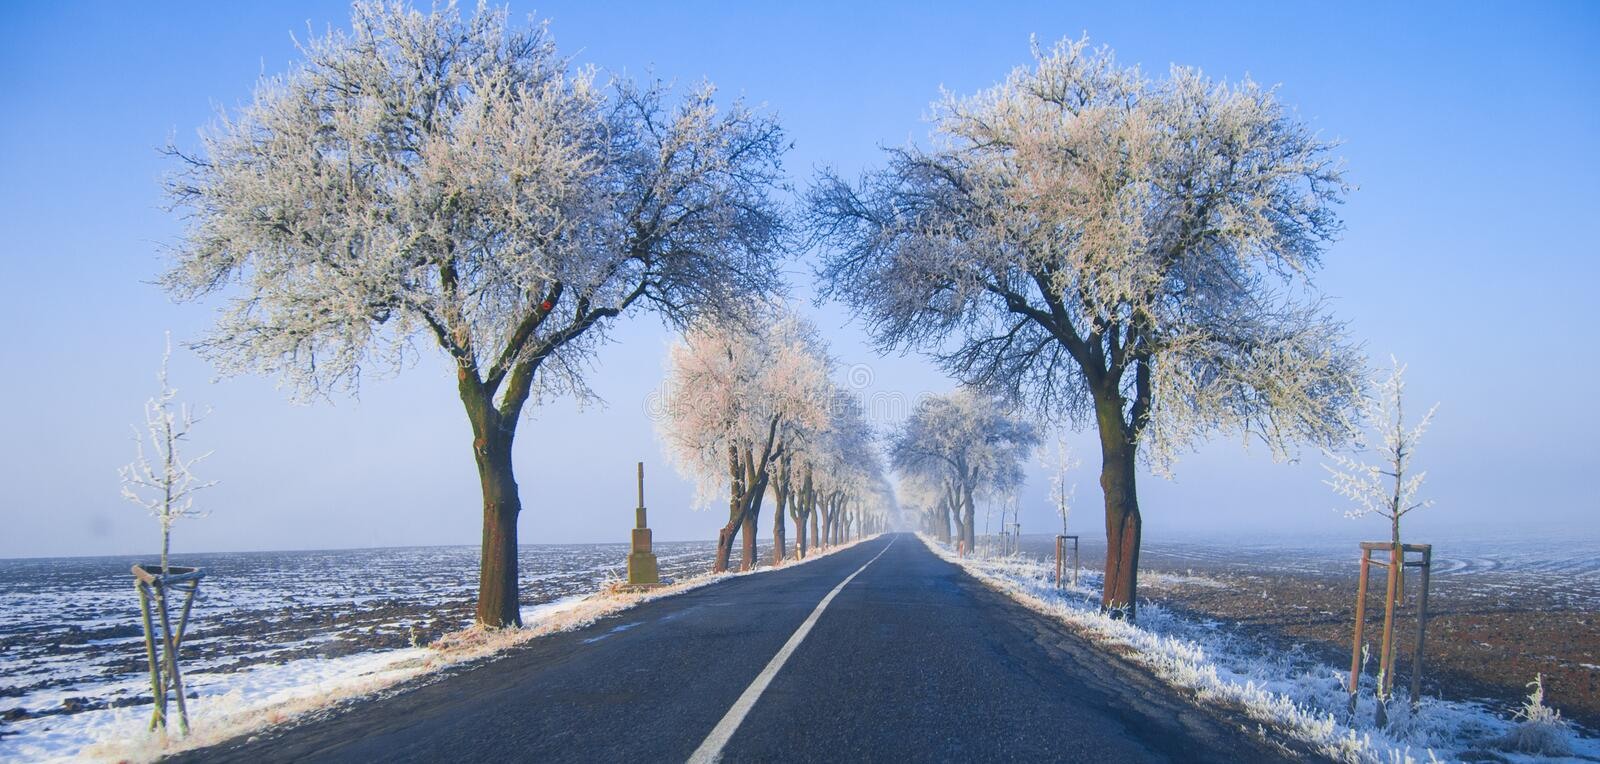 On the road with frozen trees. royalty free stock photo